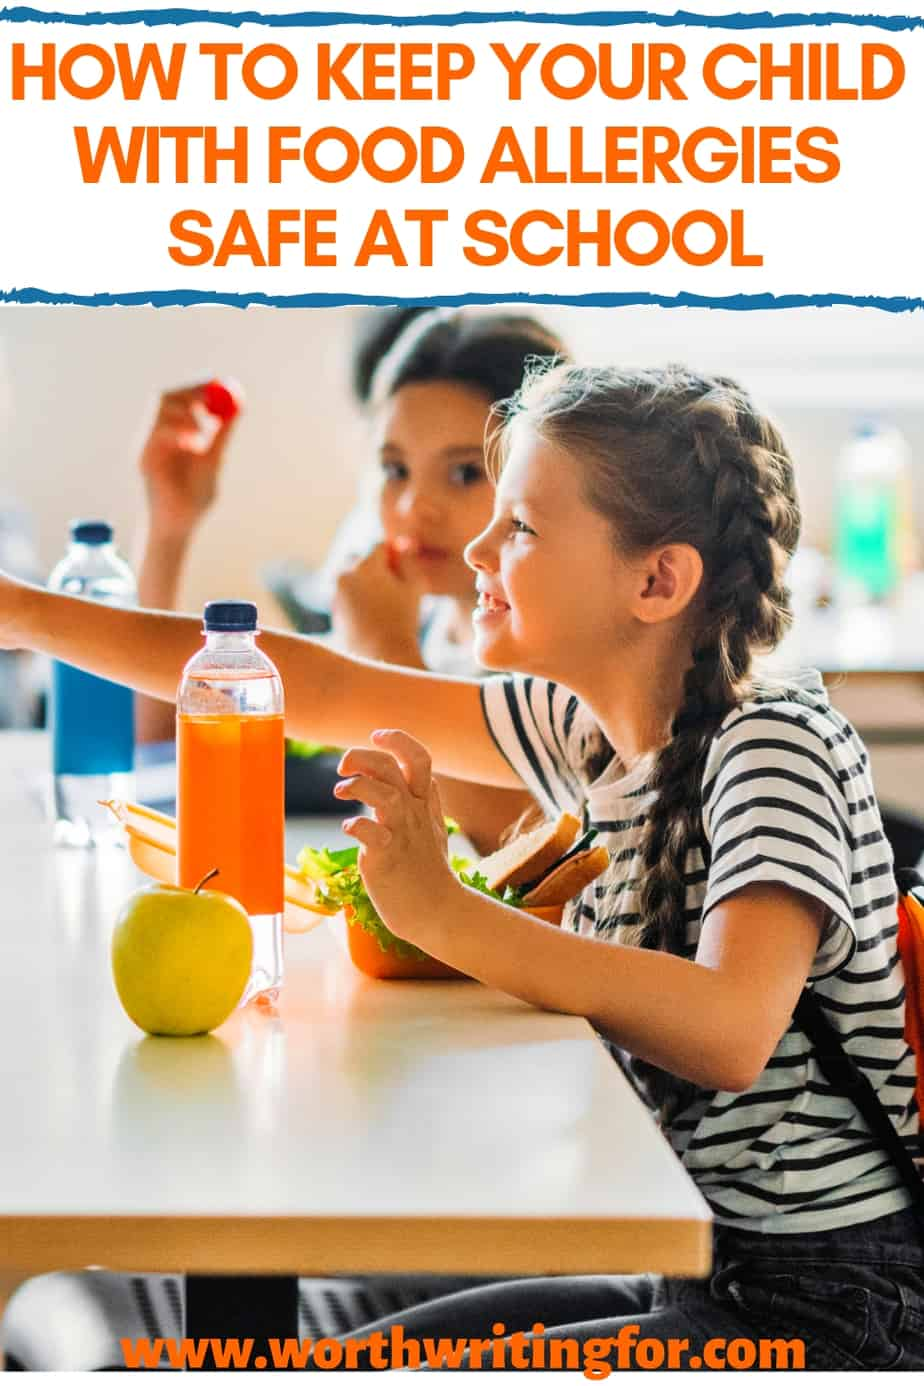 sending kid with food allergies to school safely